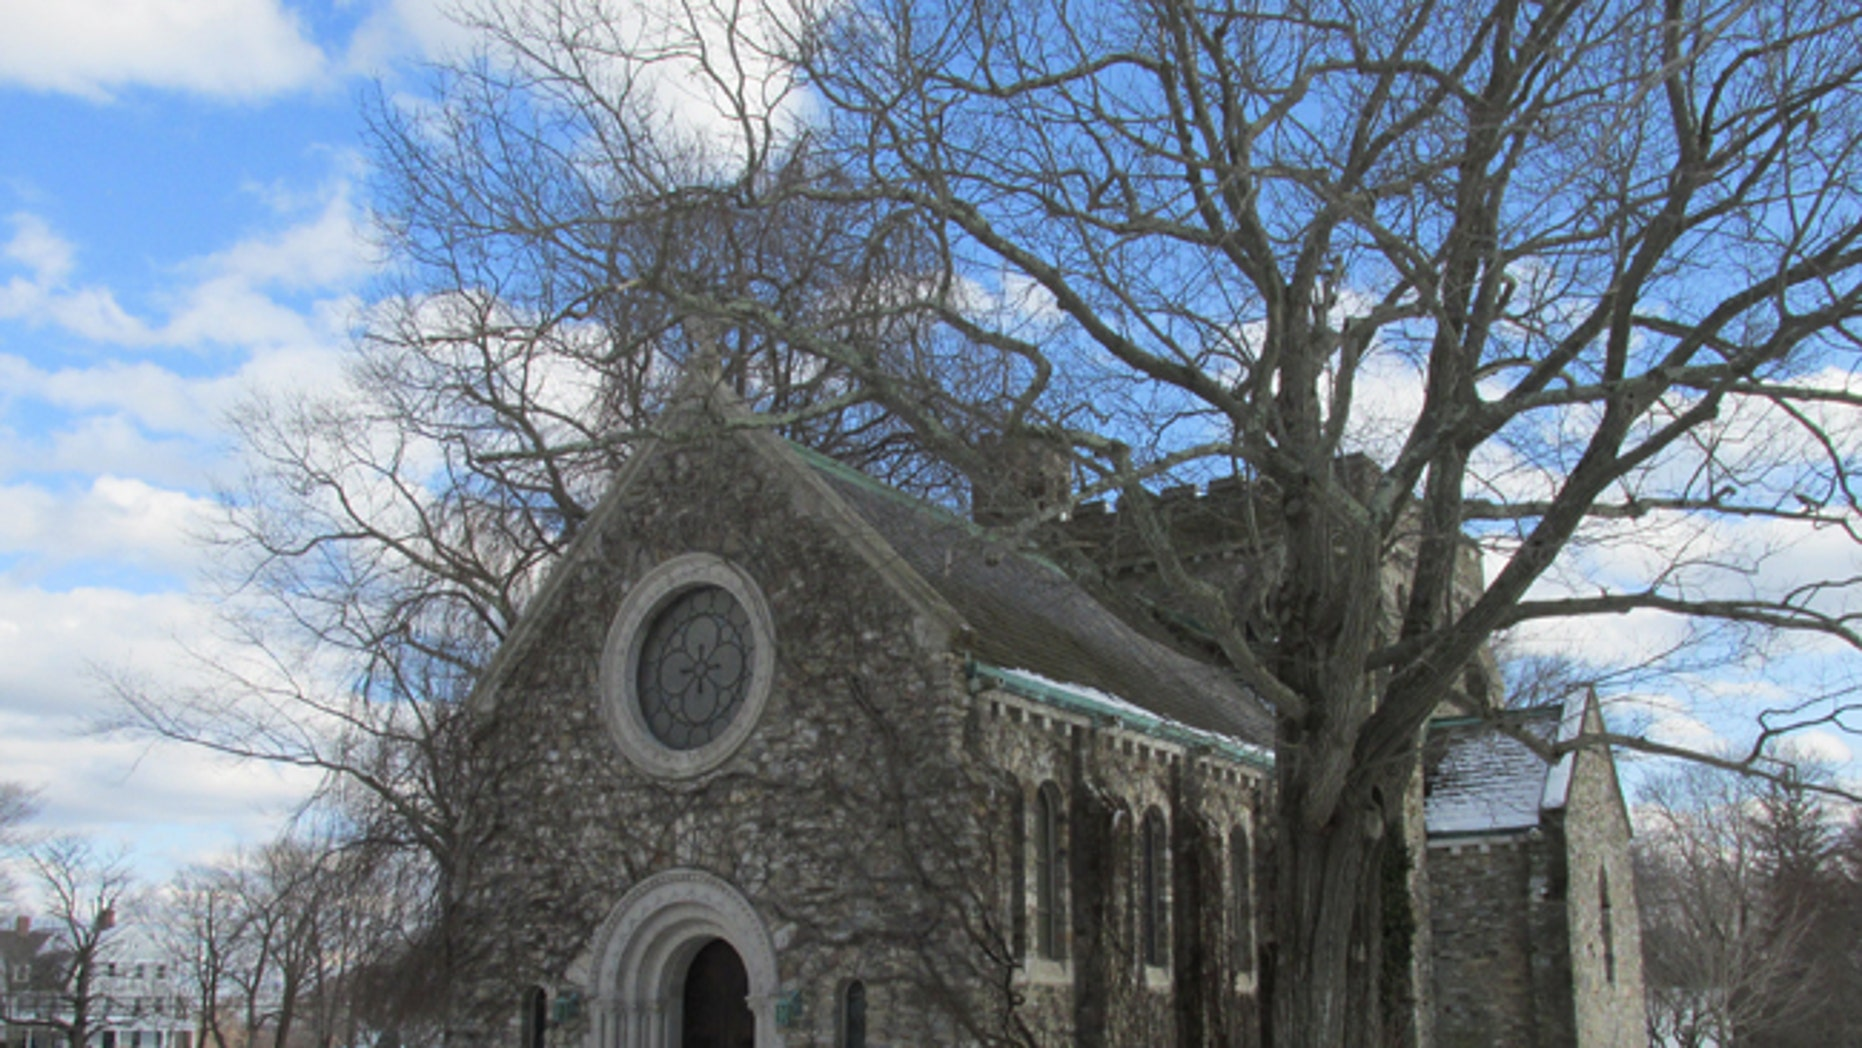 A chapel is seen at the Pomfret School in Connecticut.